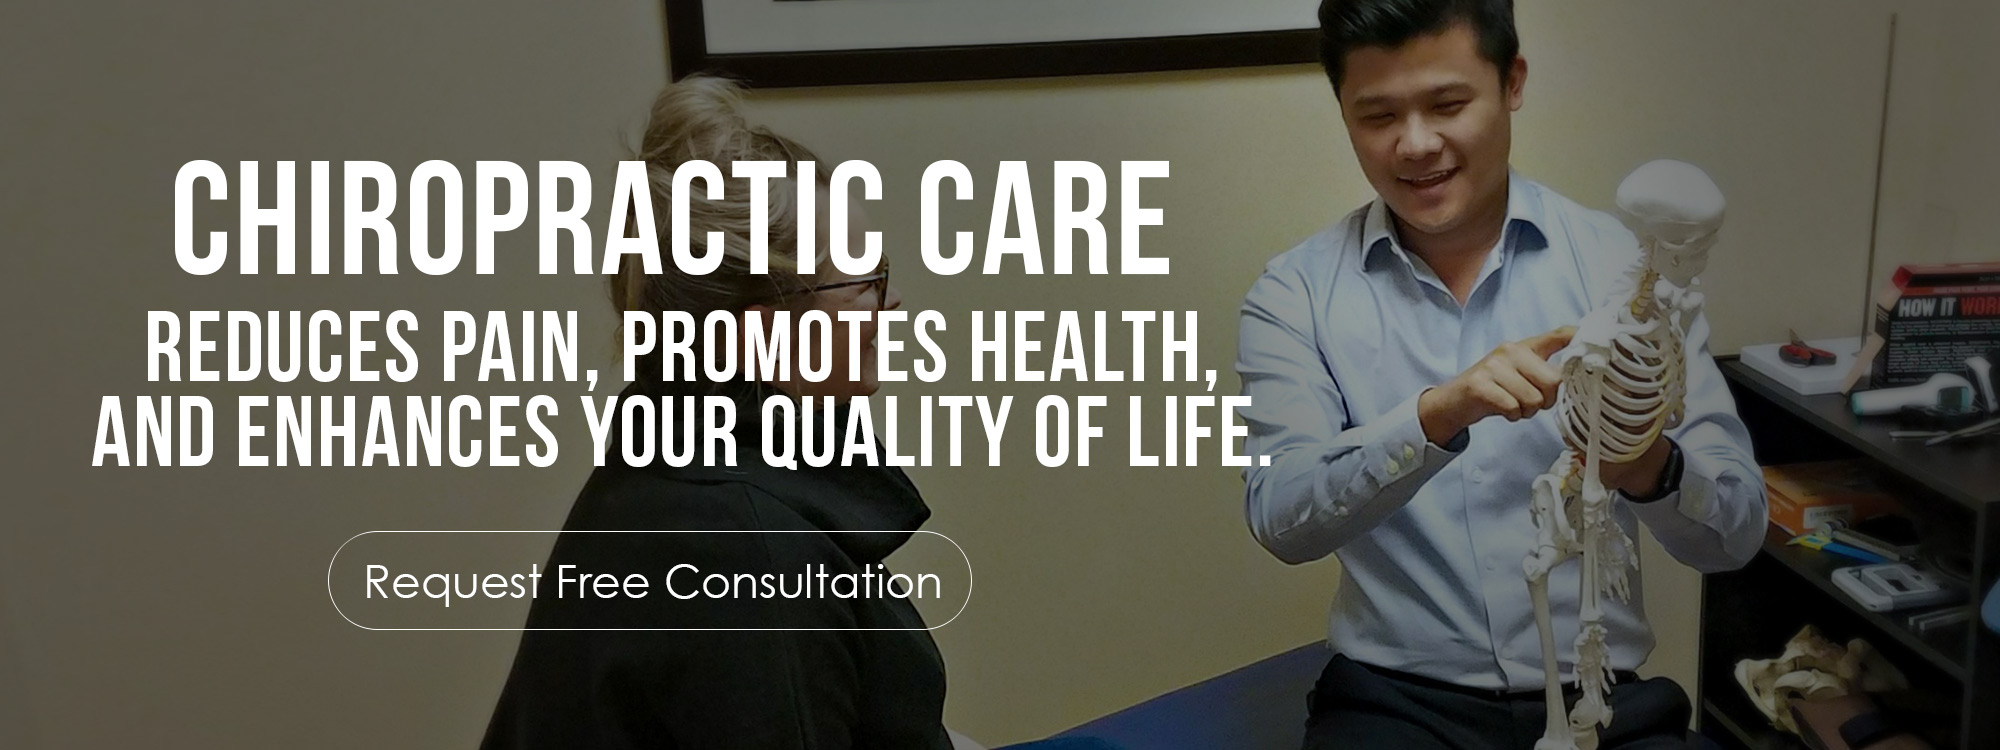 TexStar Chiropractic - Request a Consultation